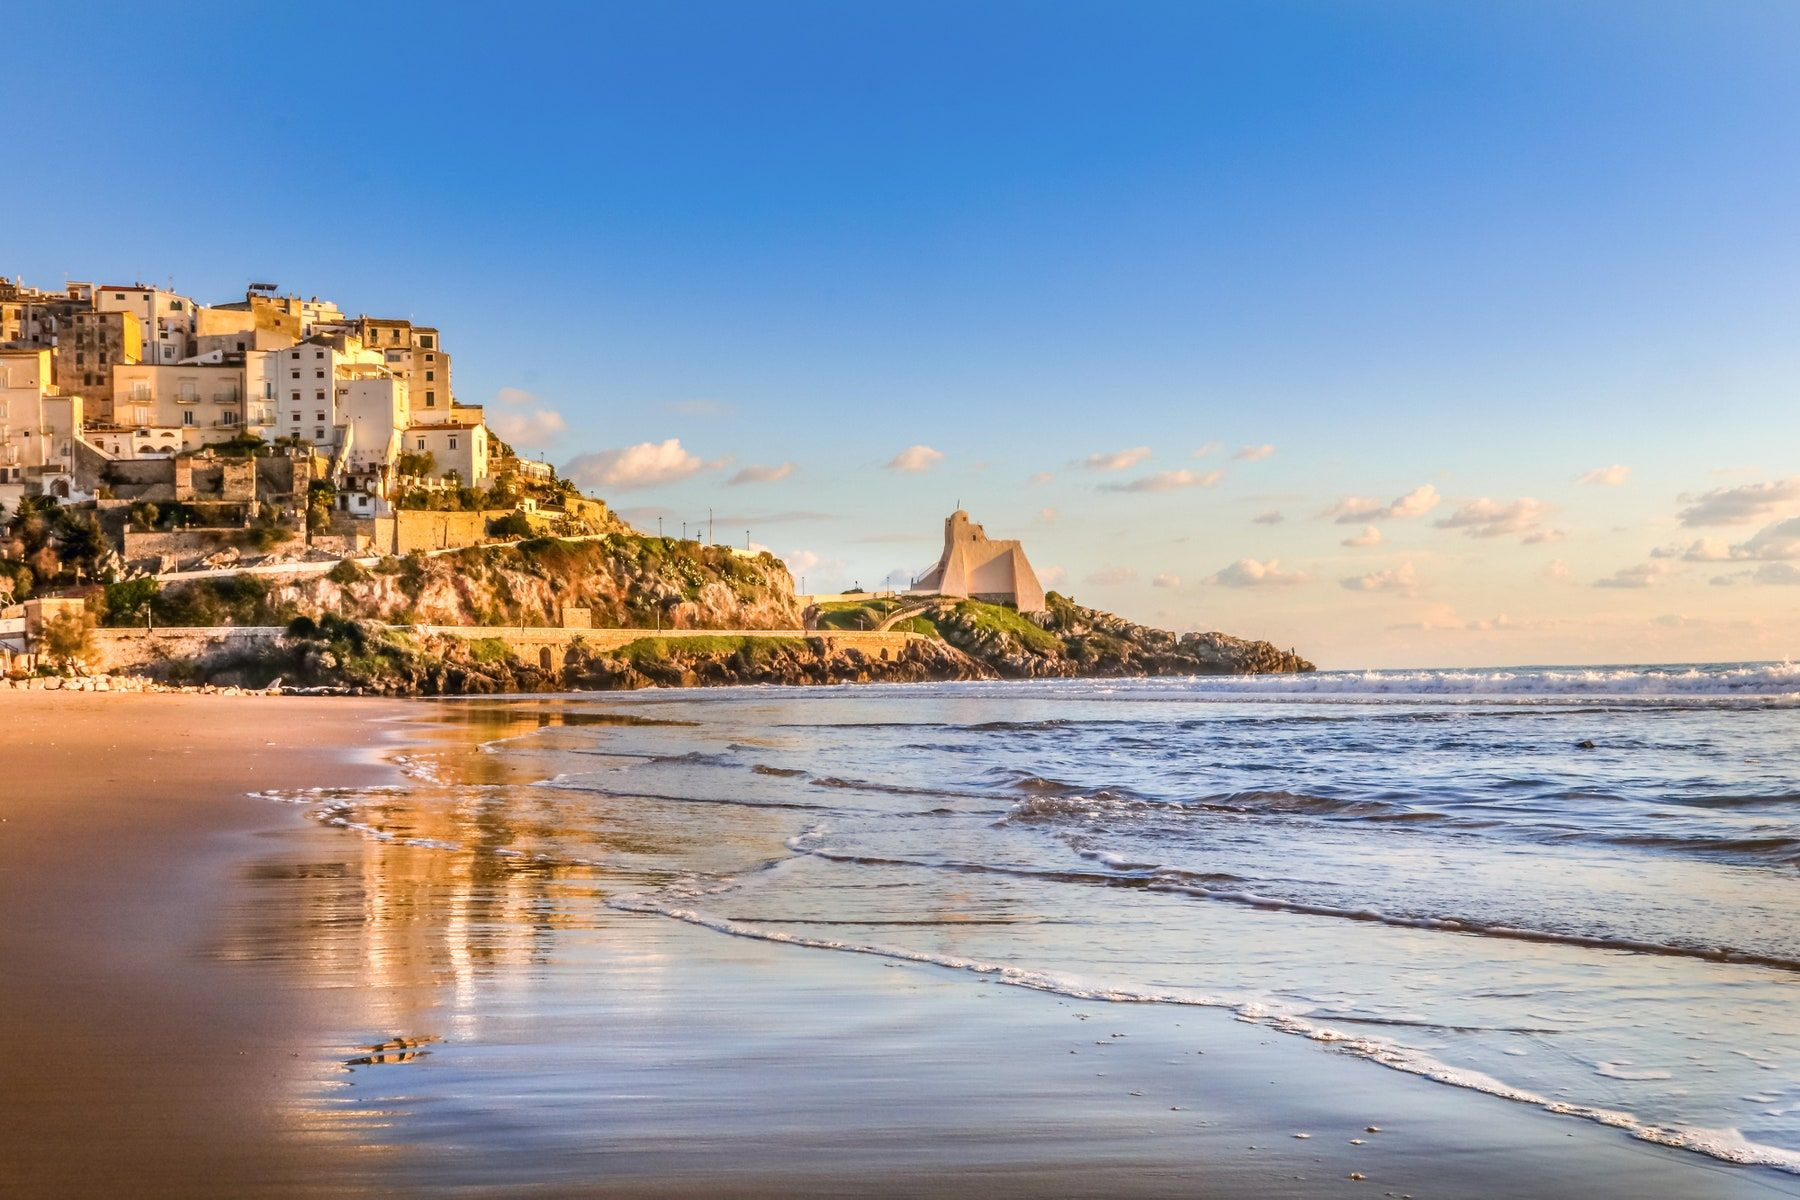 The Most Beautiful Coastal Towns in Italy - Photos - Condé